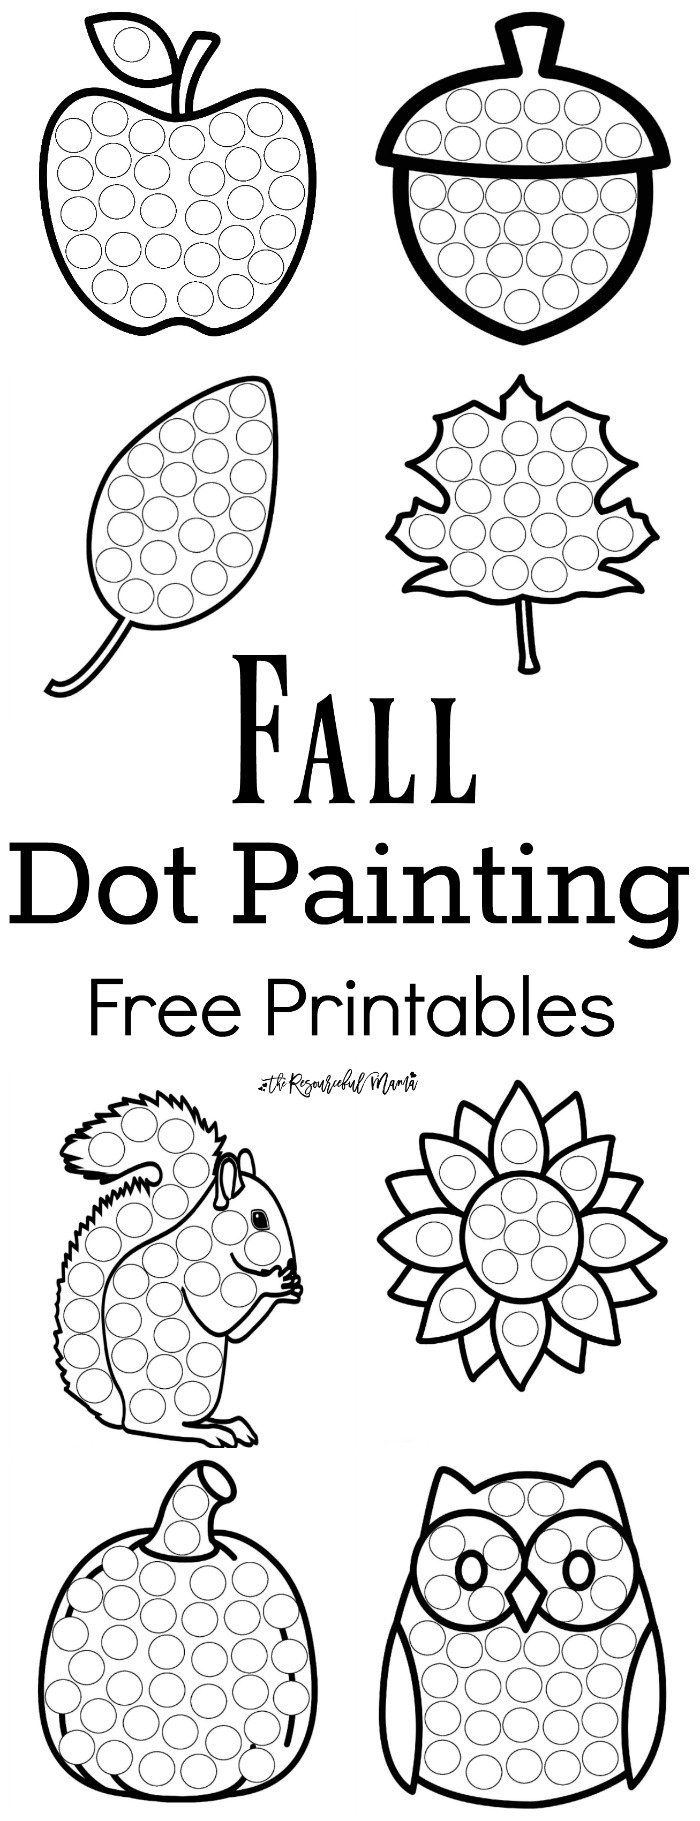 Fall Dot Painting Free Printables – Fall Worksheets for Preschool